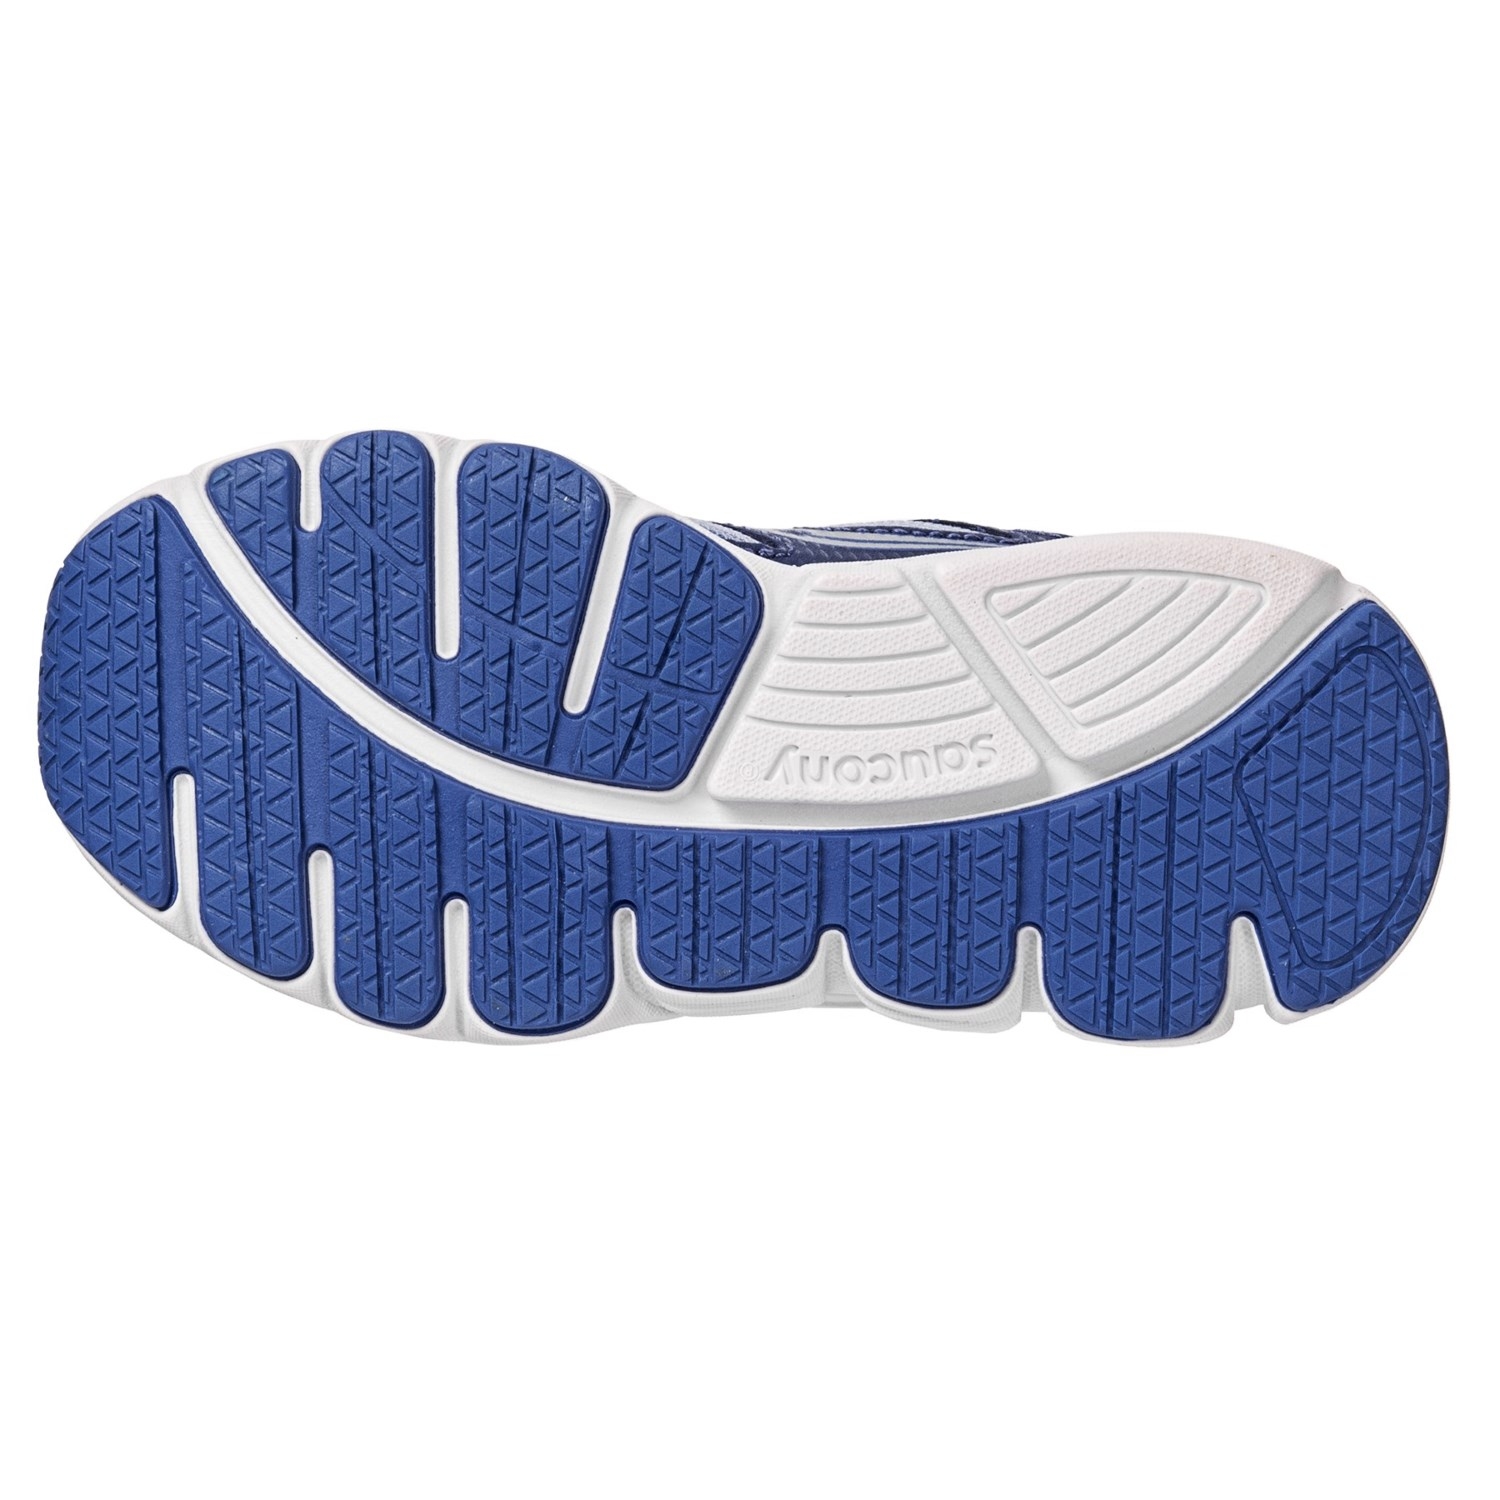 45c0ebb89fe1 Saucony Kotaro 4 A C Running Shoes (For Toddler and Little Boys ...